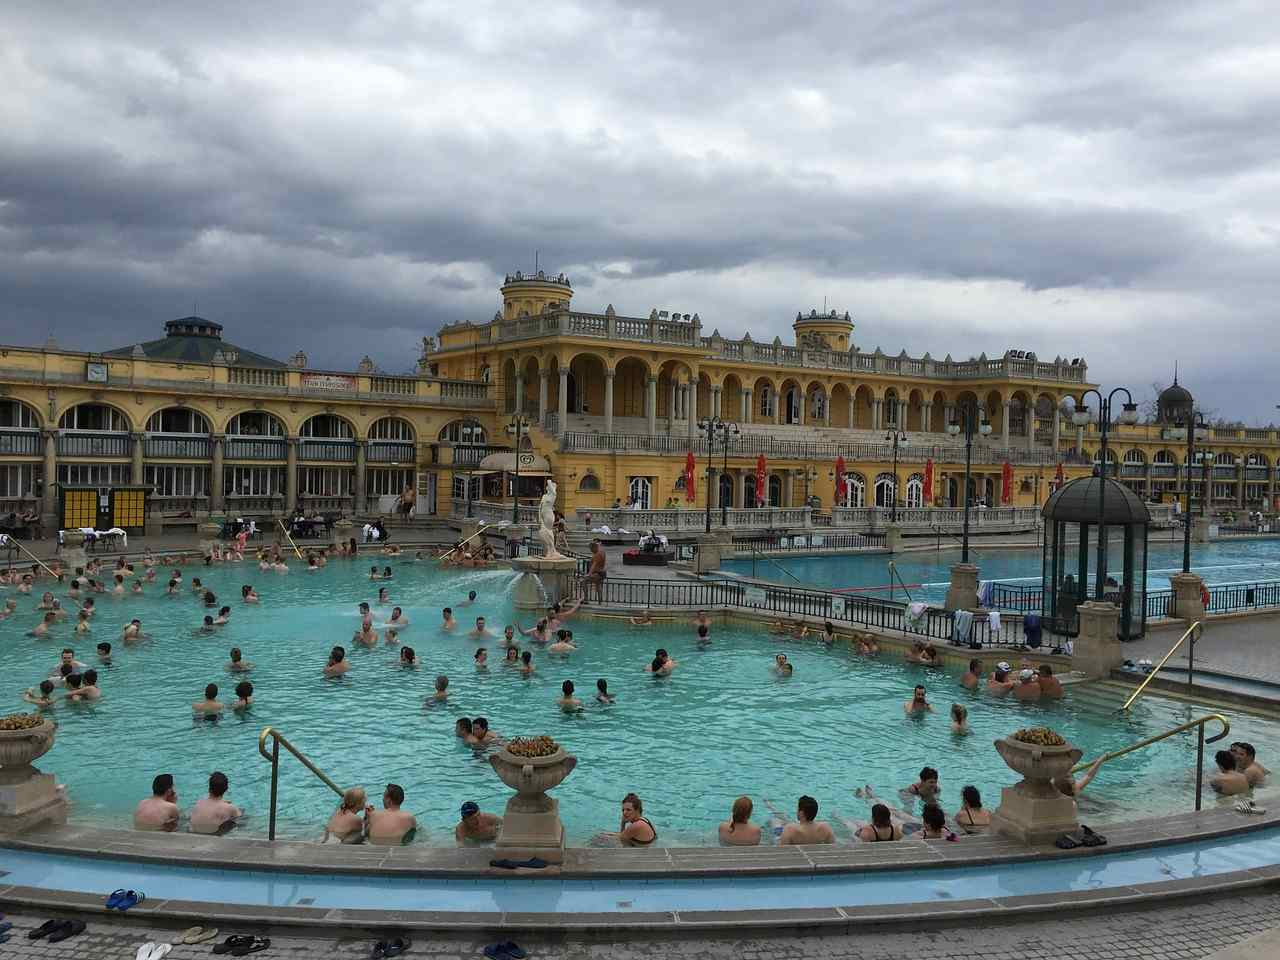 Szechenyi Baths, Places to Visit in Budapest